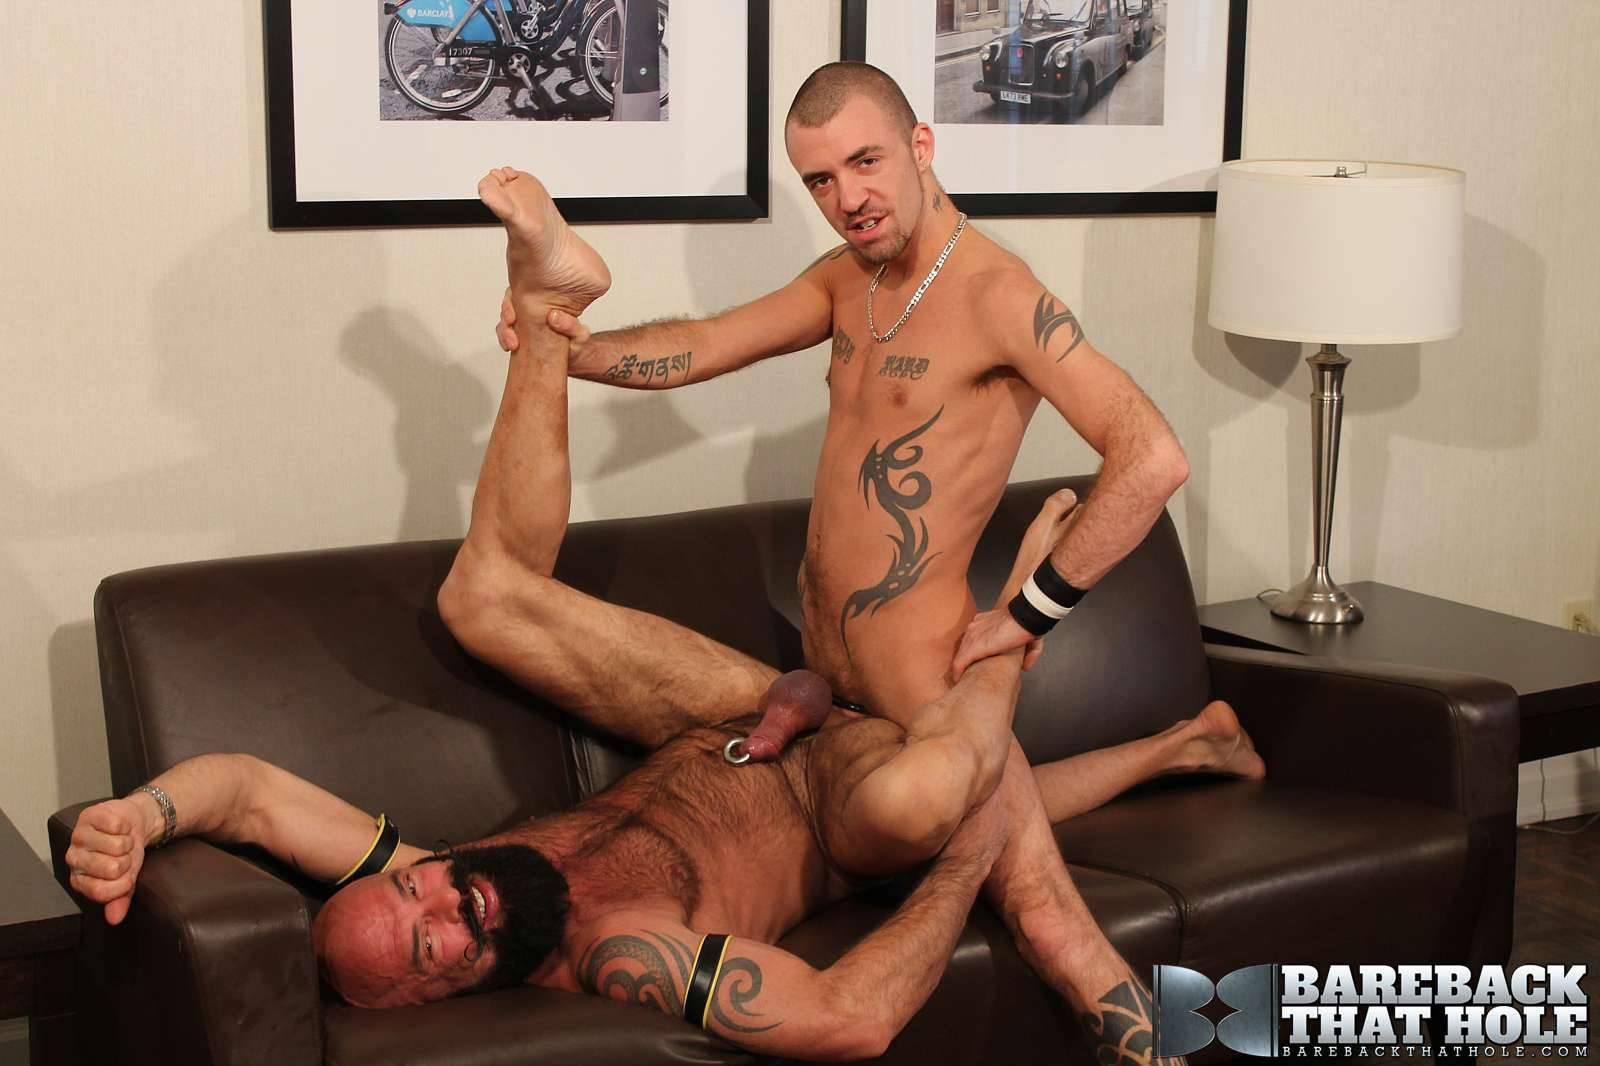 Bareback-That-Hole-Jessy-Karson-and-John-Stache-Daddy-Getting-Barebacked-By-Big-Uncut-Cock-Amateur-Gay-Porn-19 Hairy Muscle Daddy Gets Barebacked By A Younger Big Uncut Cock